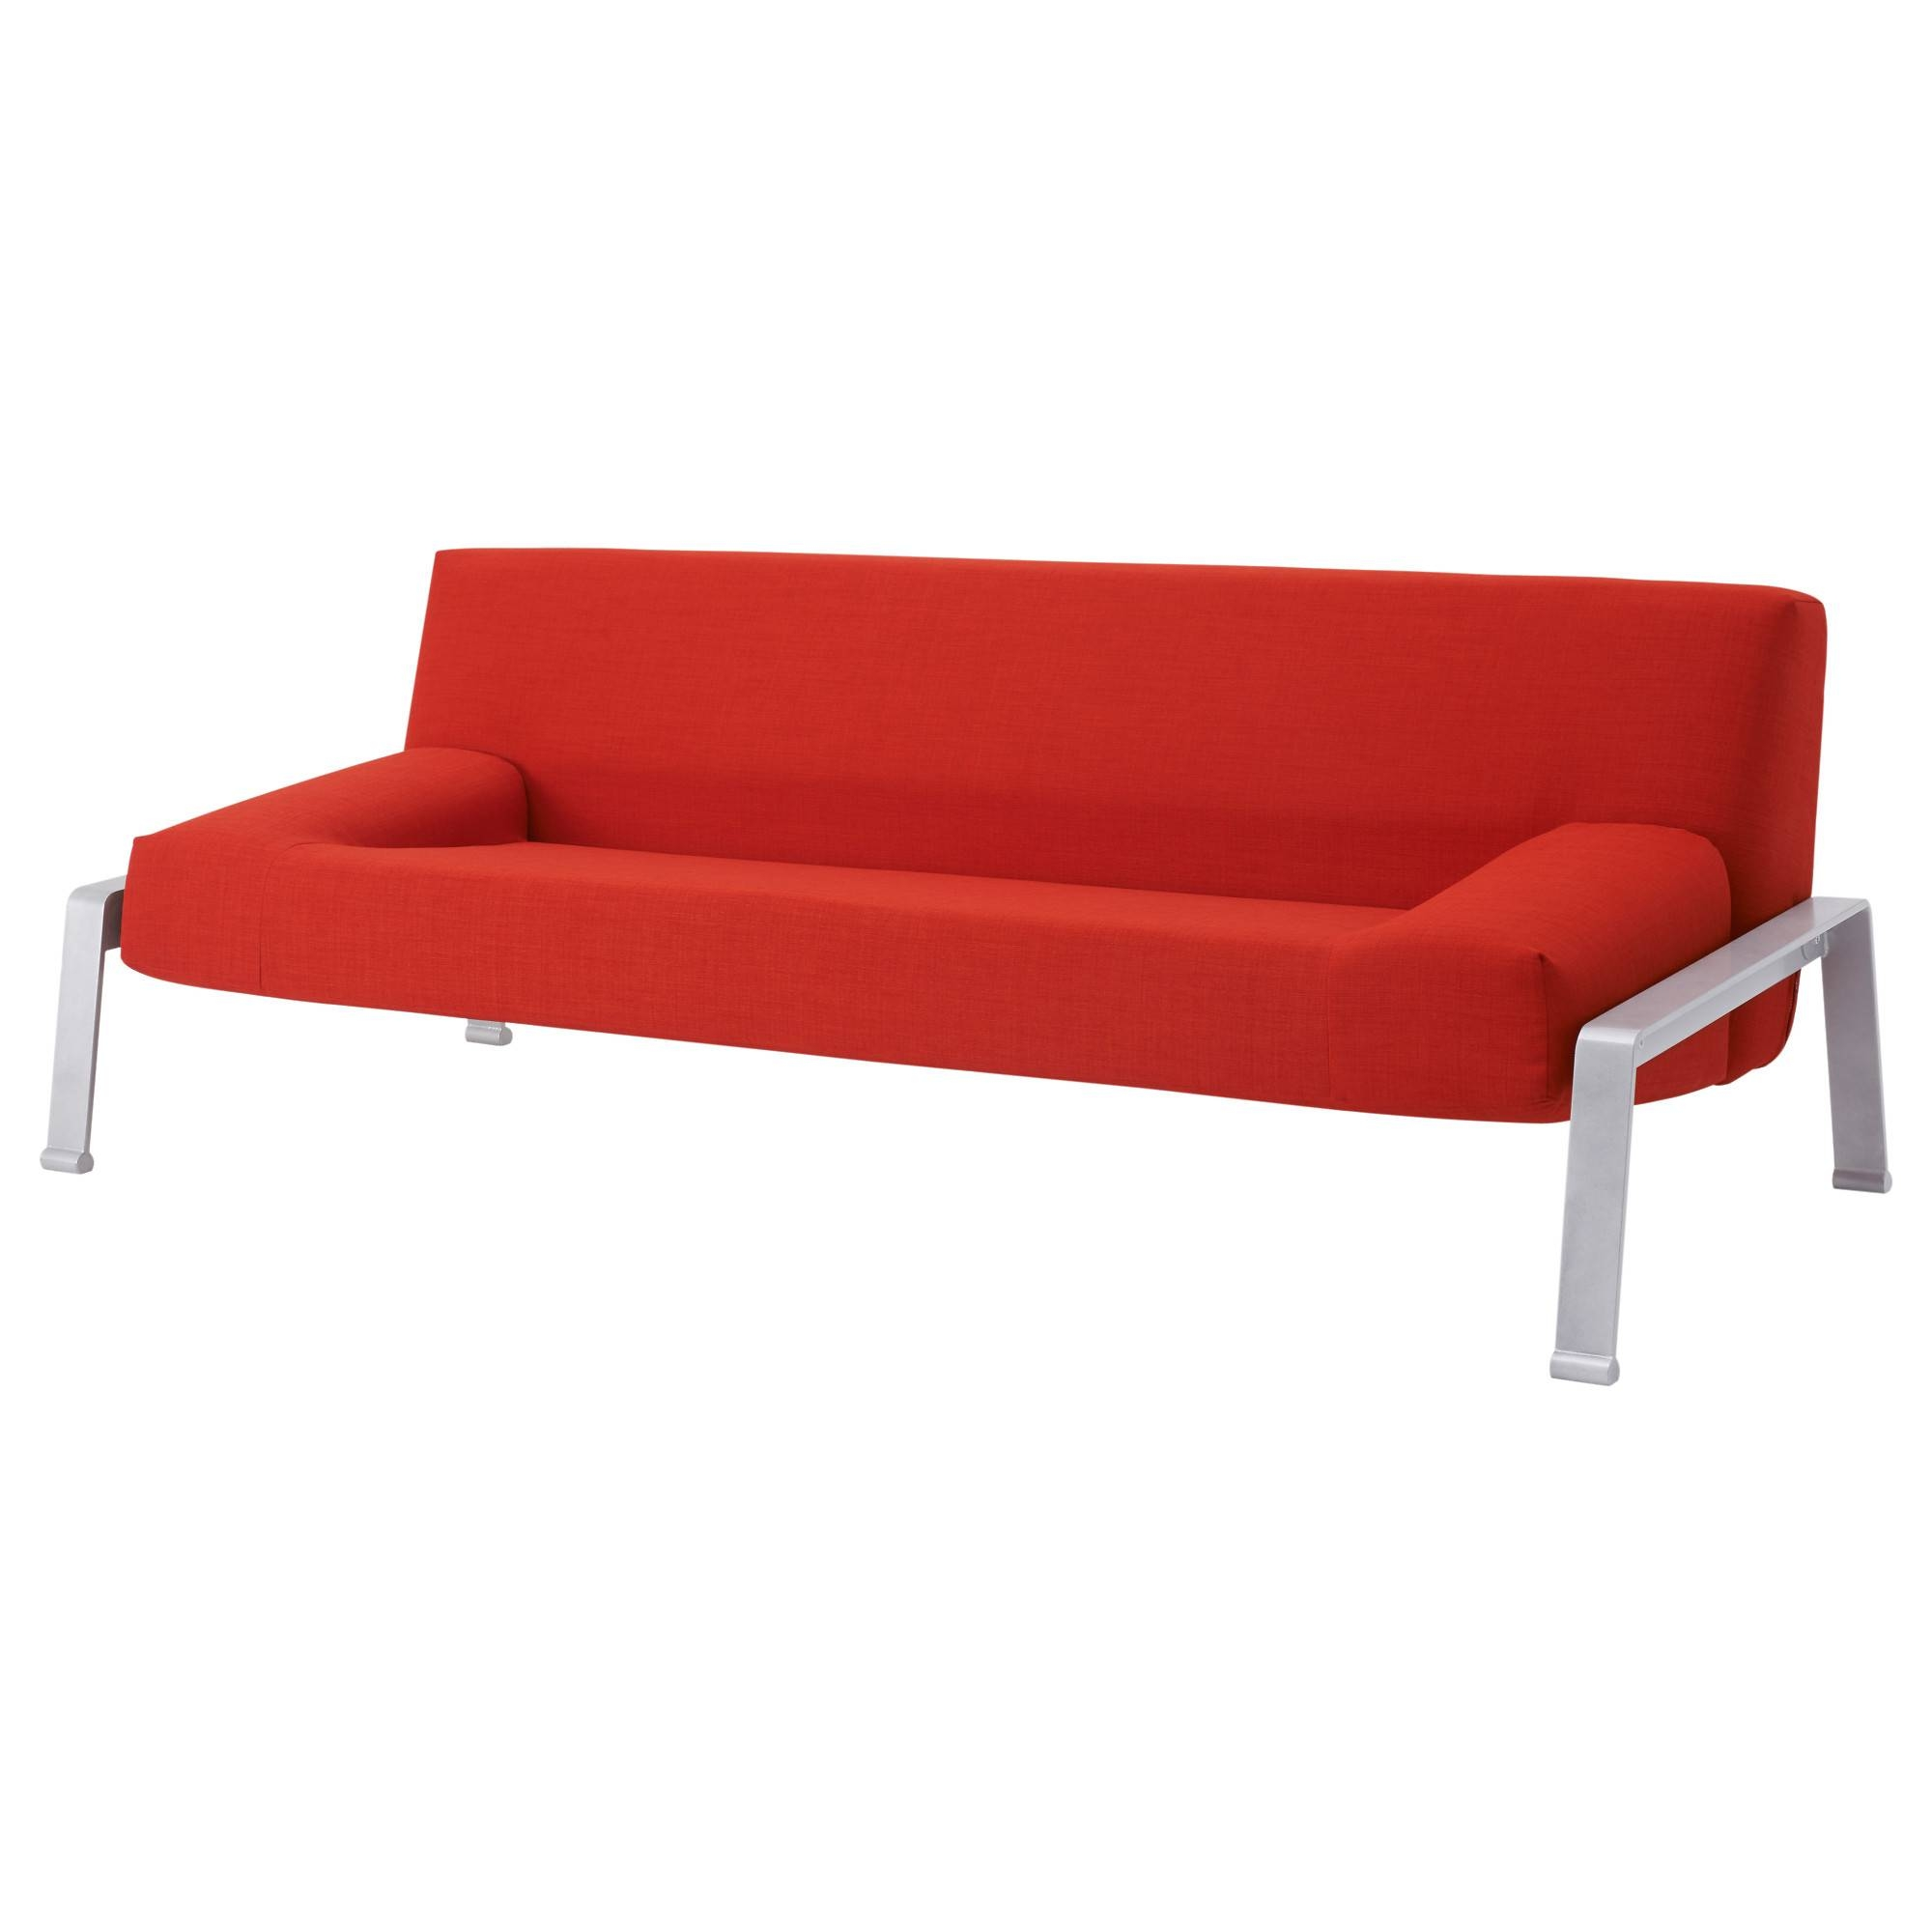 6 Furniture Styles You Really Need To Consider In 2018: 2018 Latest Red Sofa Beds Ikea